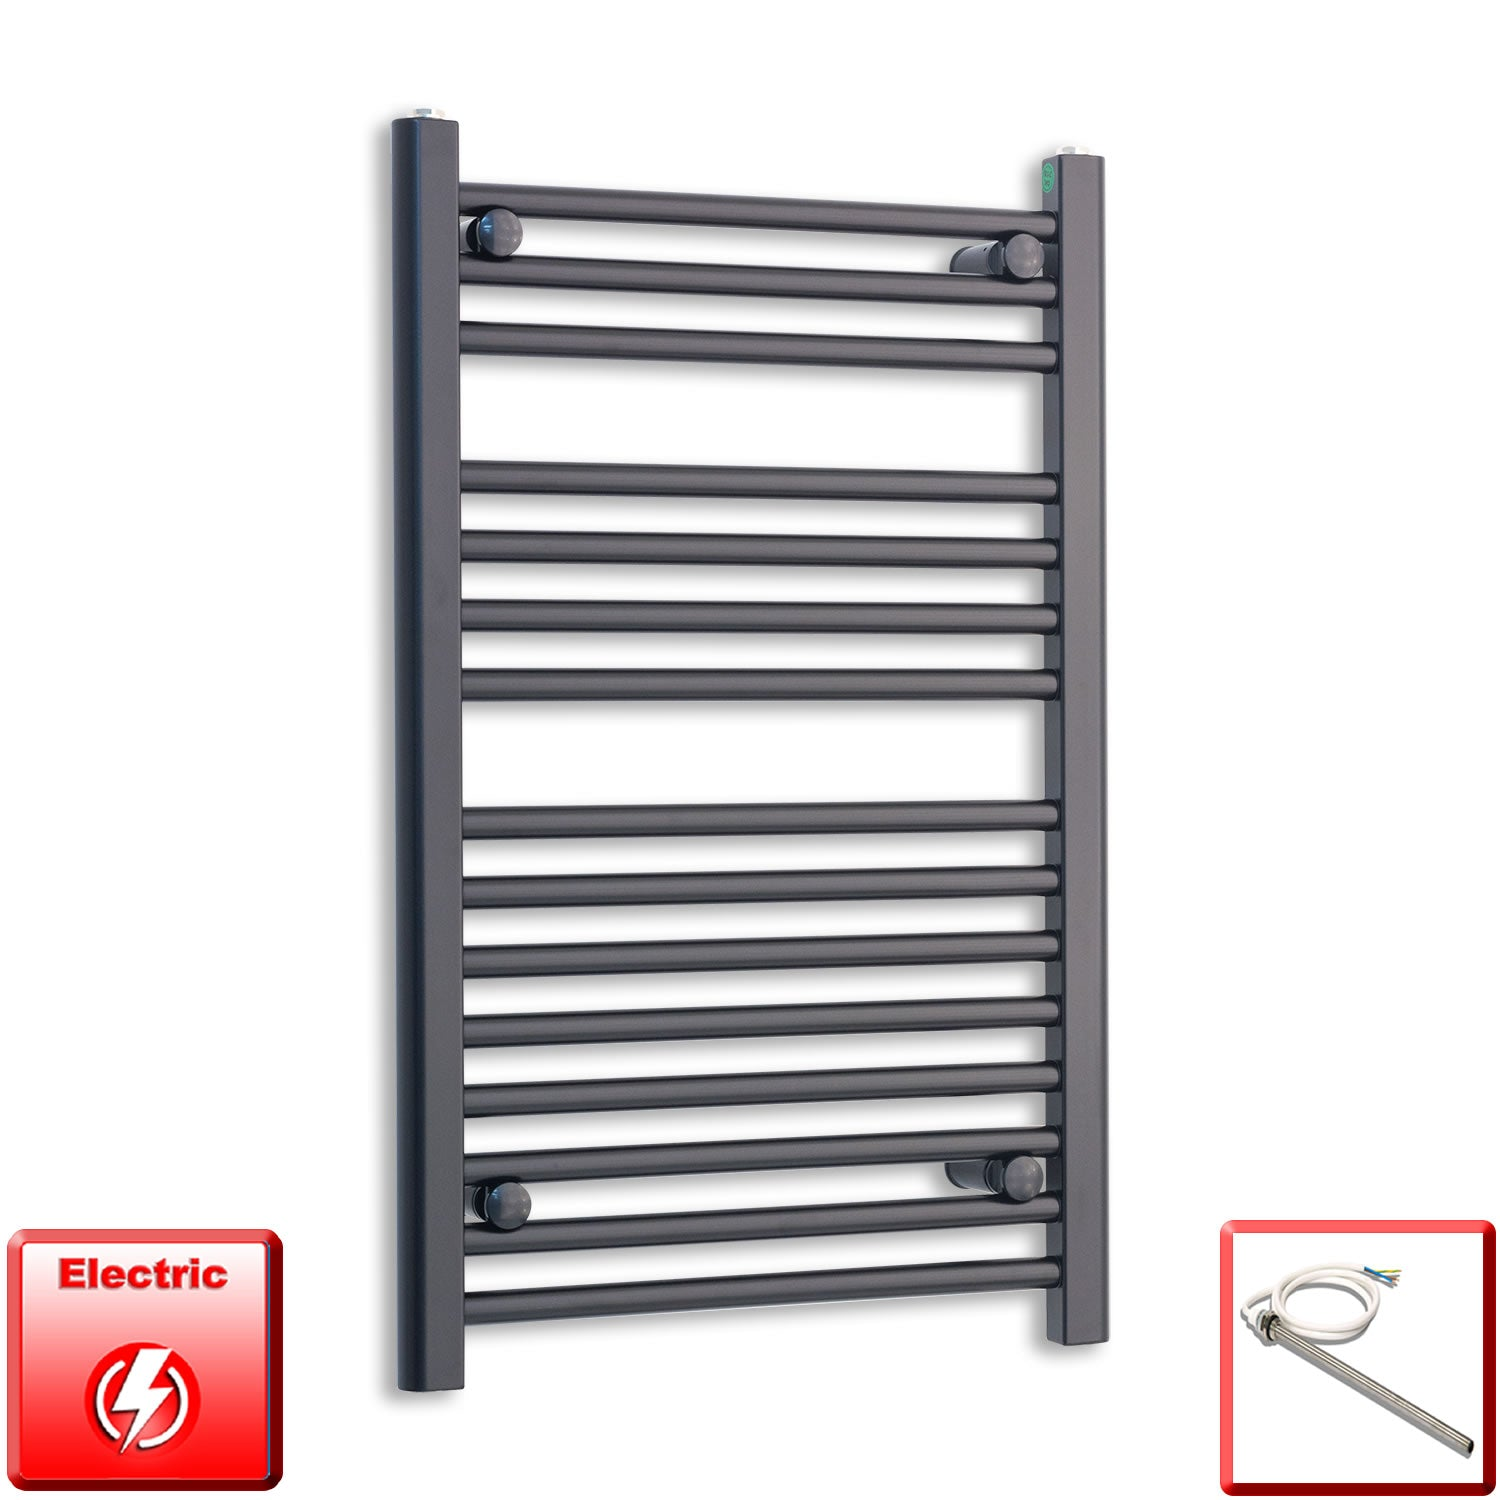 500mm Wide 800mm High Pre-Filled Black Electric Towel Rail Radiator With Single Heat Element